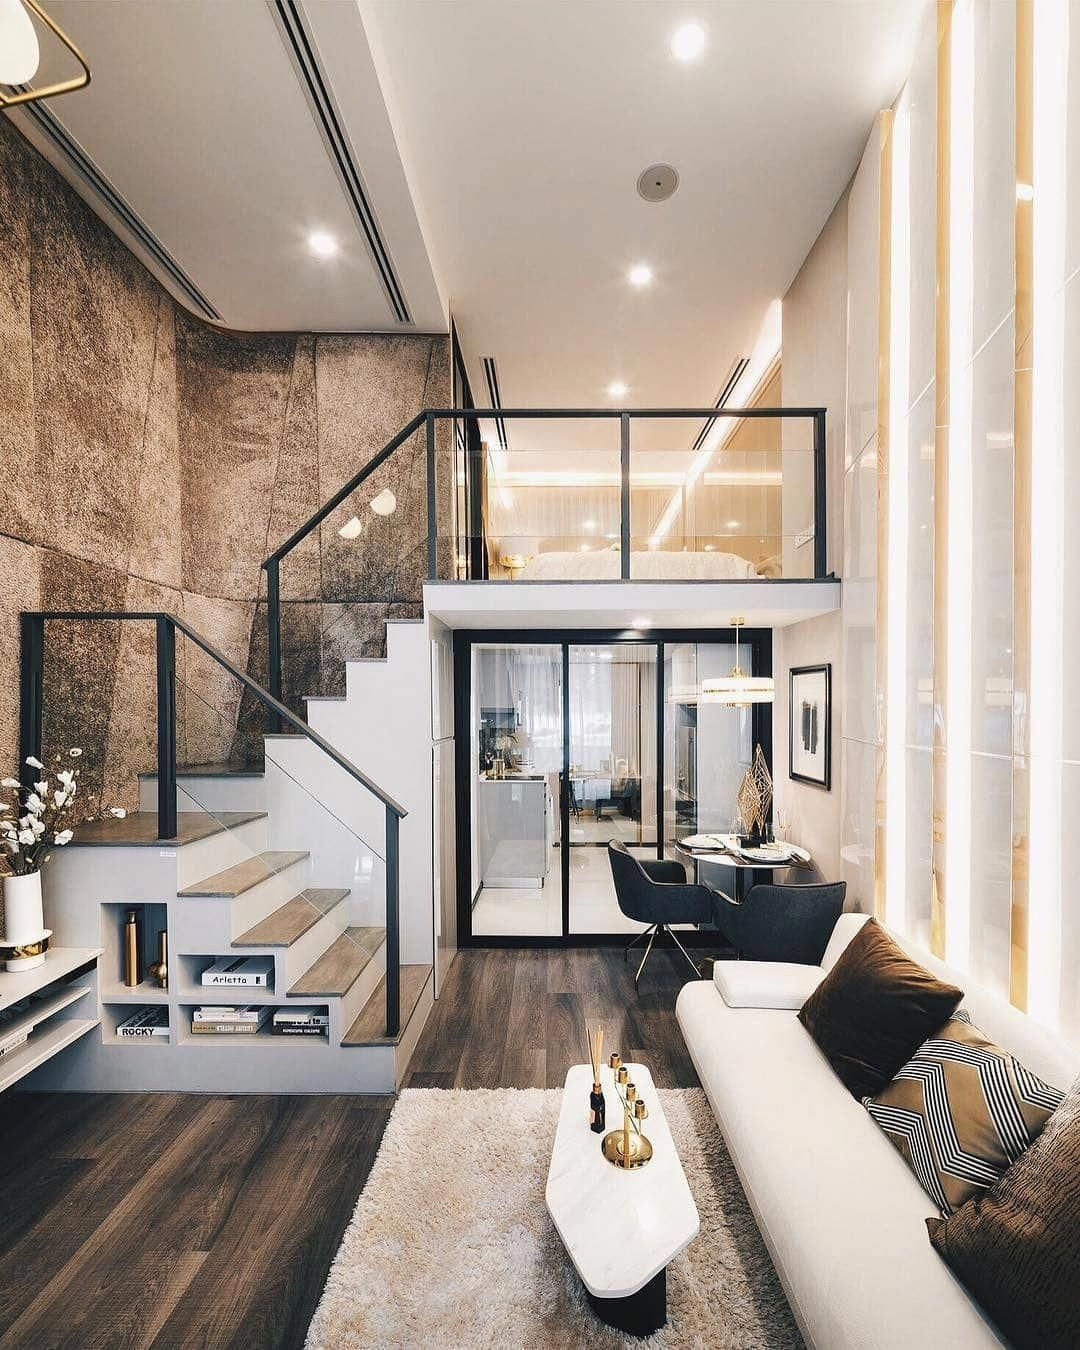 Inspirational Modern House Design Interior Bedrooms Apartments Cheap Home Decor Themes Salepr Minimal Interior Design Minimalism Interior Loft Design